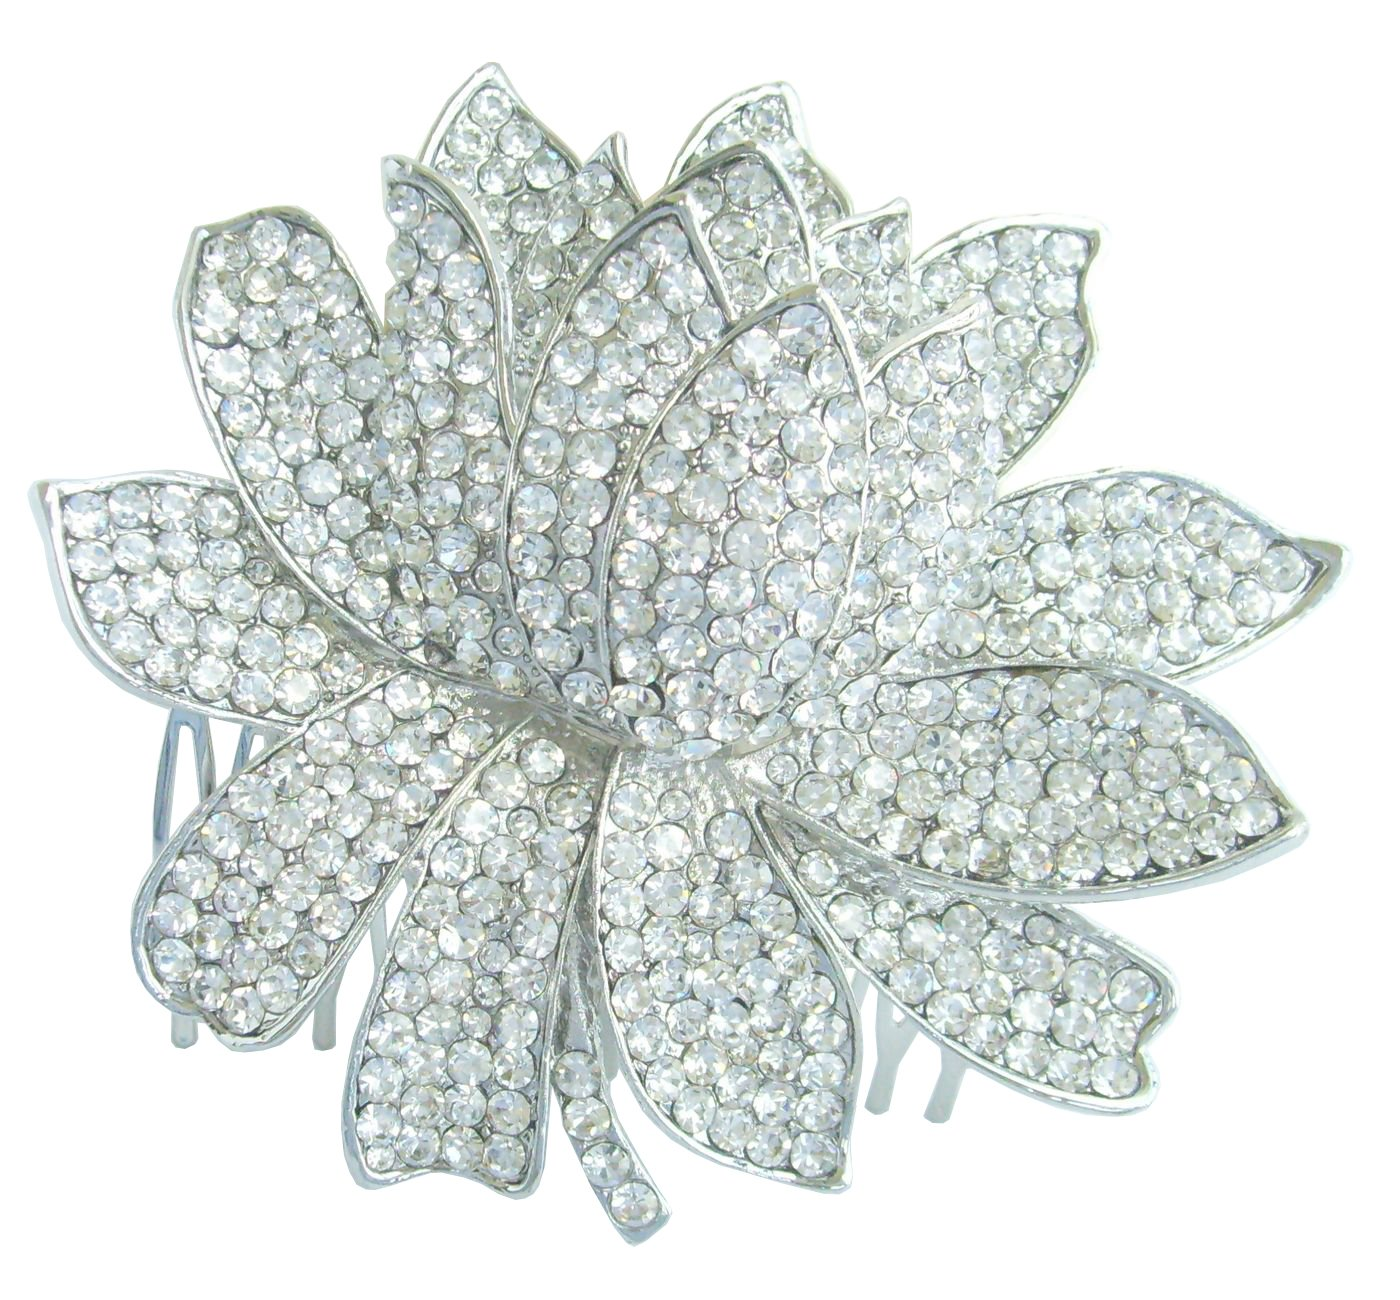 Sindary Wedding Headpiece 3.54'' Water Lily Bridal Hair Comb Silver Tone Clear Rhinestone Crystal HZ4784